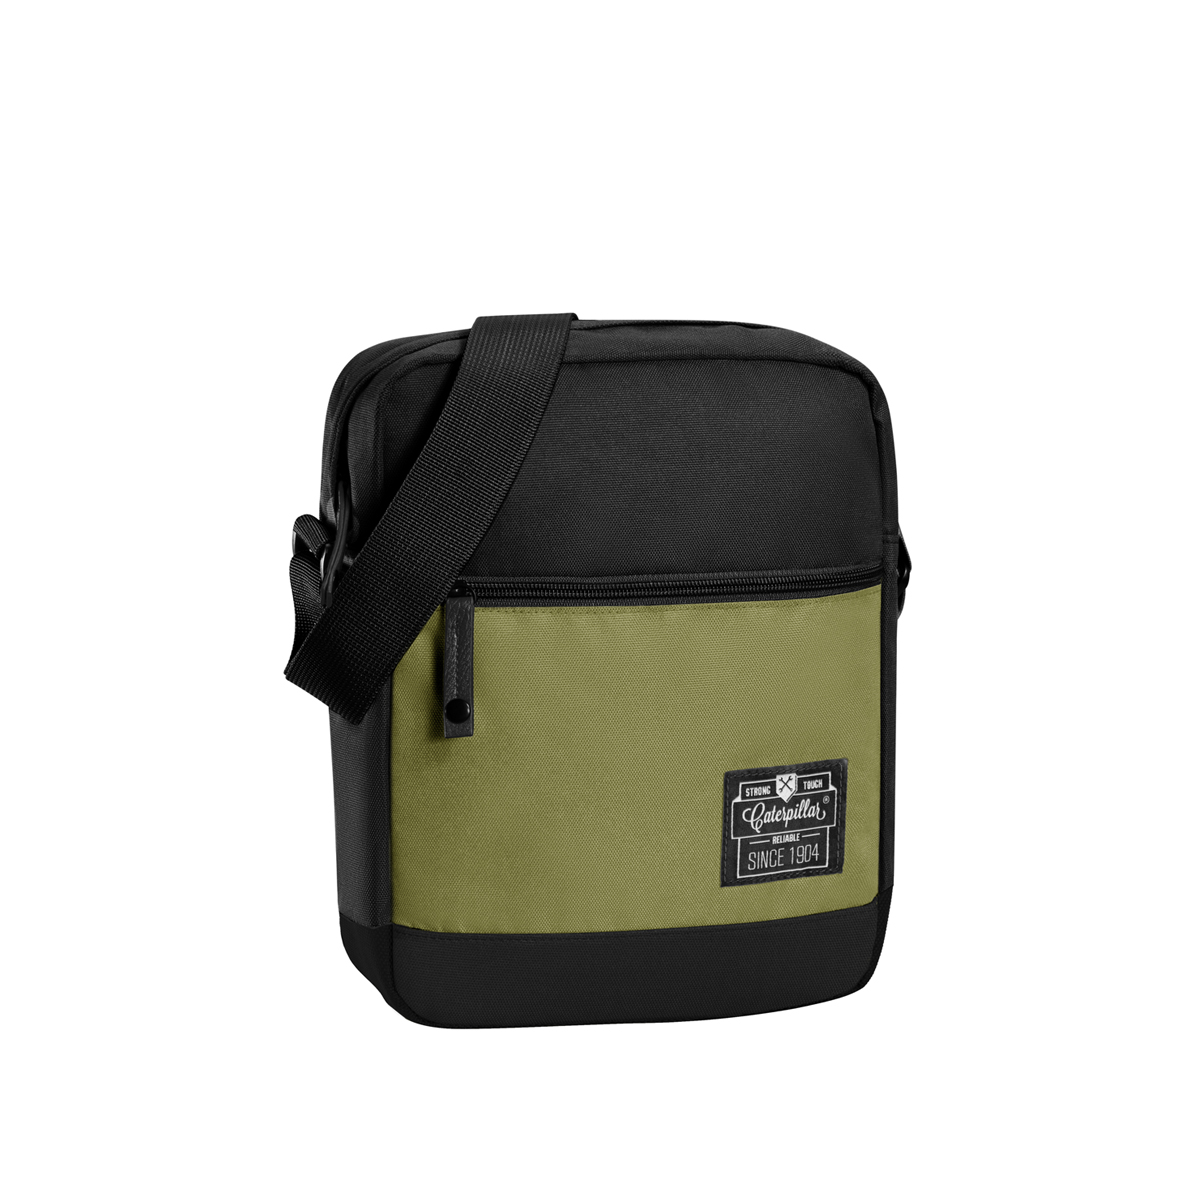 Jual Caterpillar Hauling Tas Selempang Pria - Black Fishbone Green  Caterpillar Bags   Luggage dbb596b611